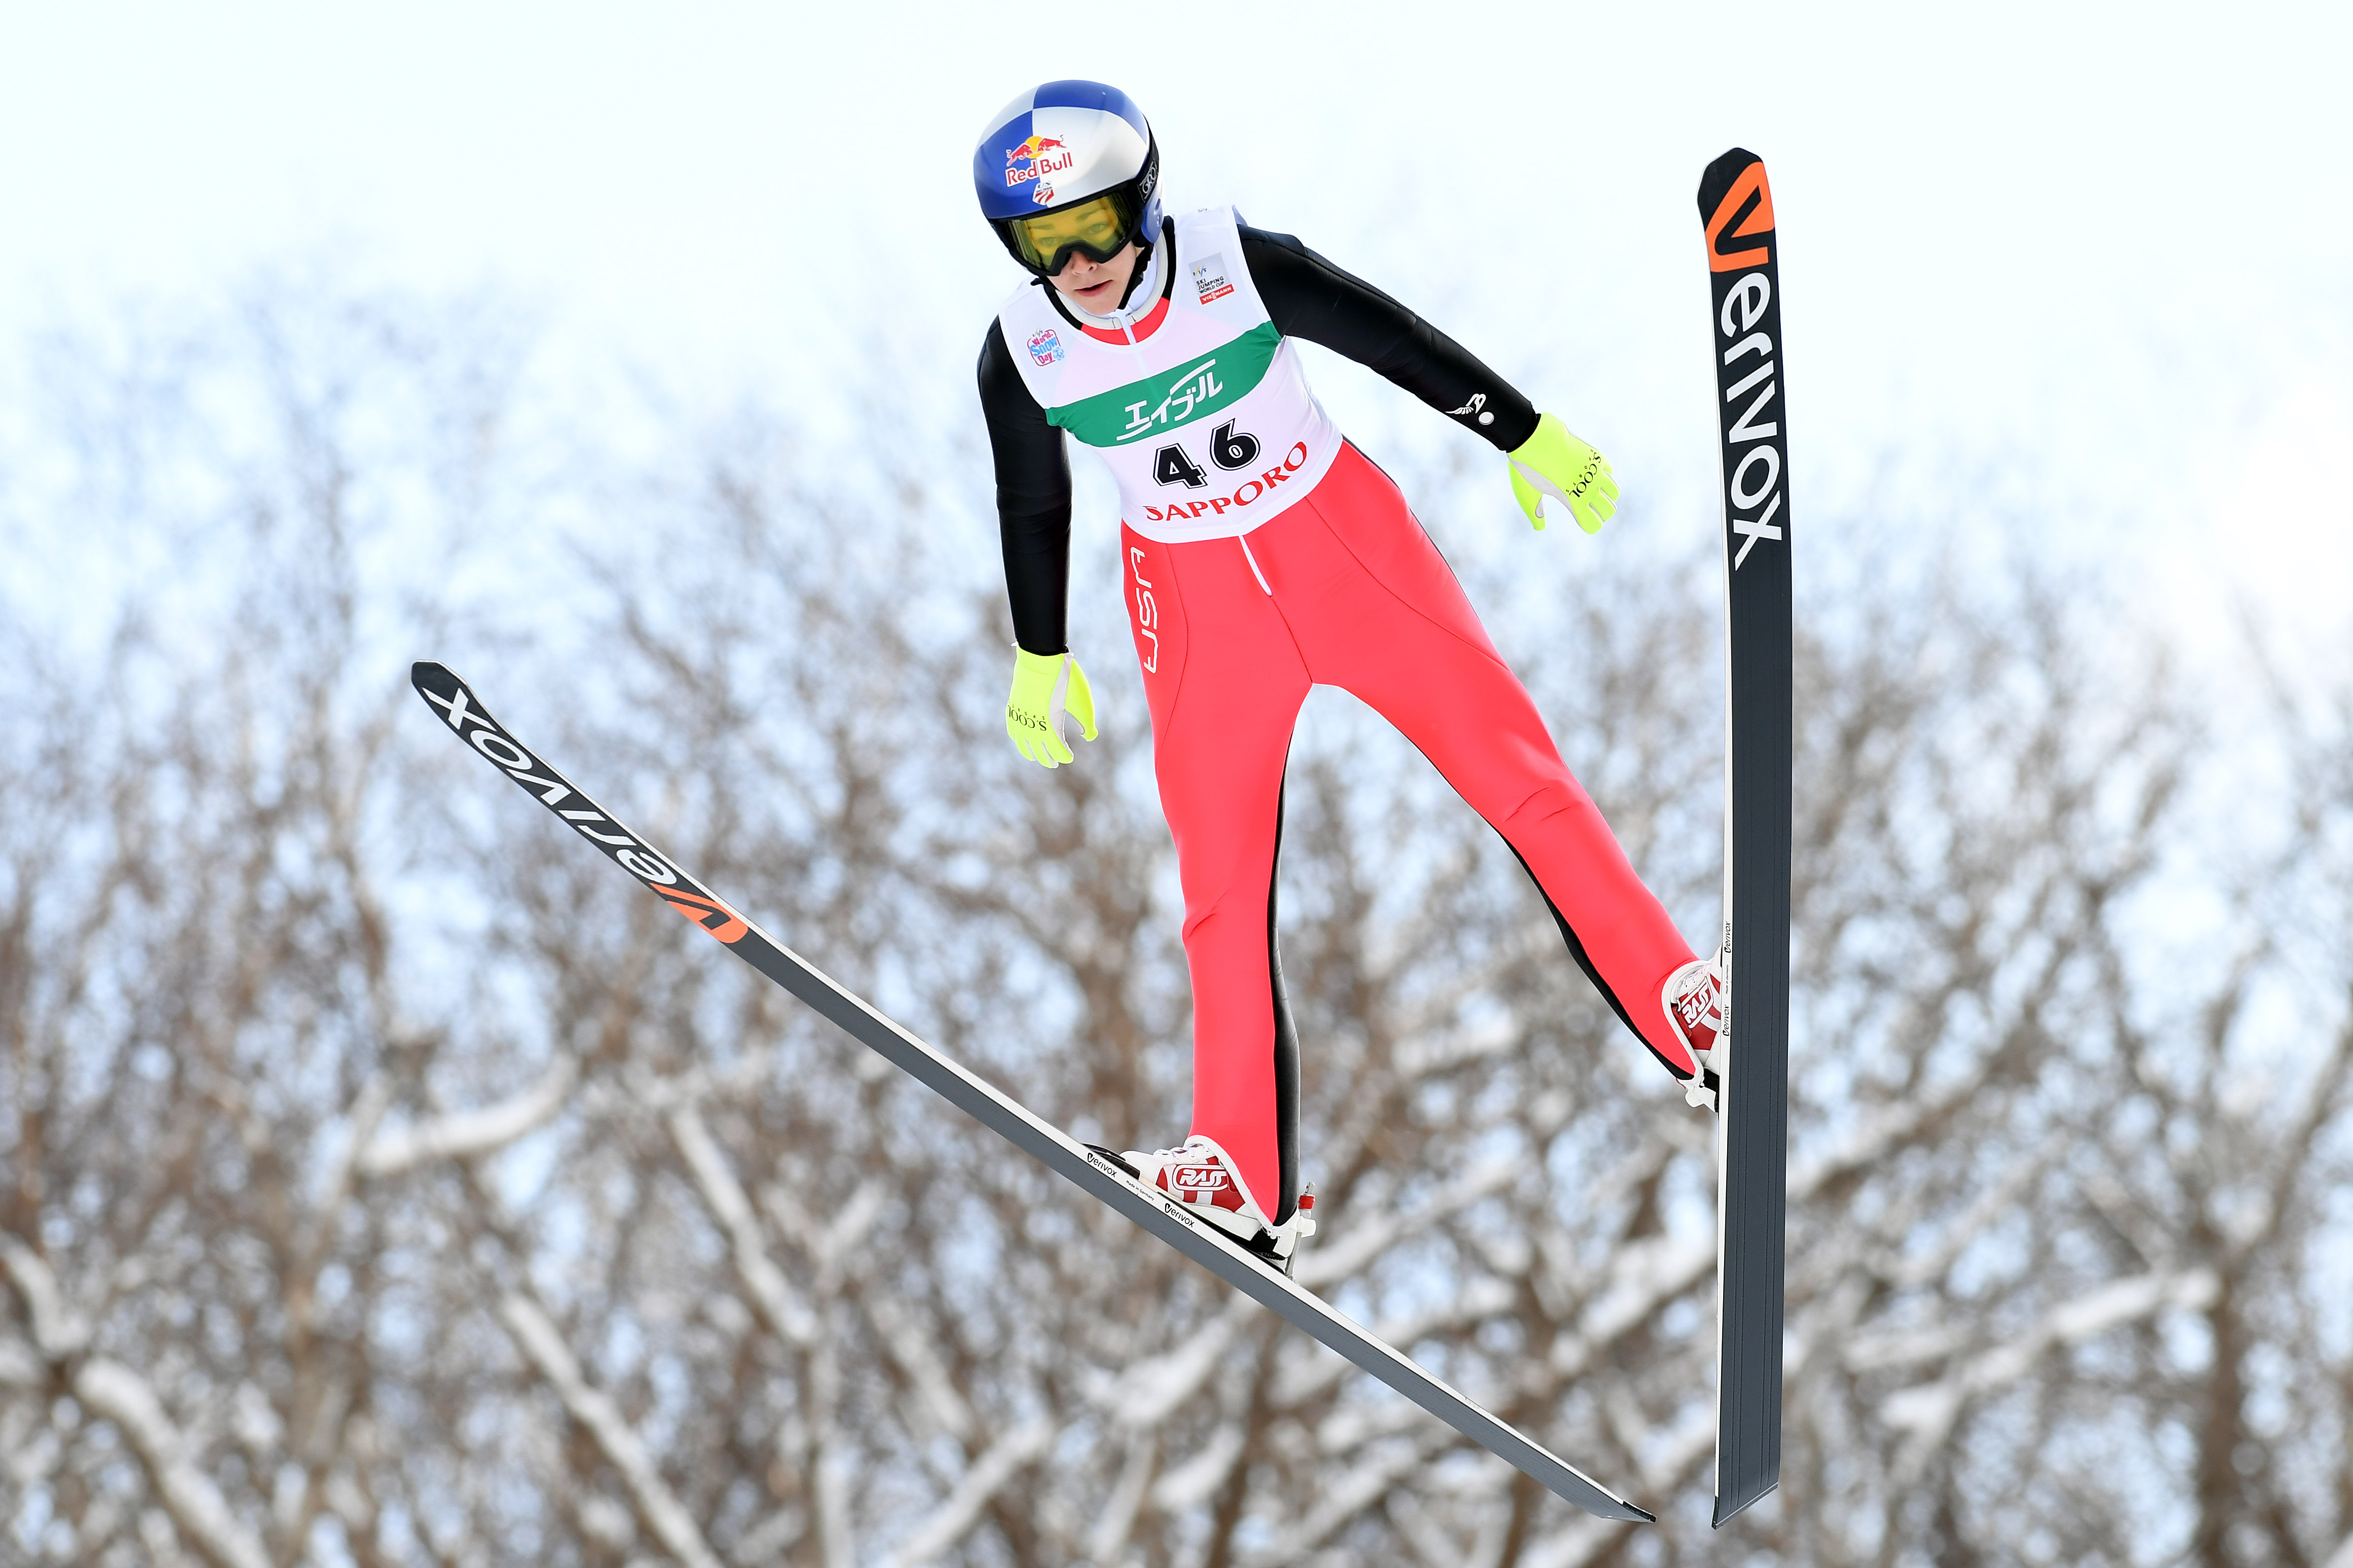 Sarah Hendrickson of the USA competes in the Ladies HS 100 during the FIS Women's Ski Jumping World Cup Sapporo at the Miyanomori Ski Jump Stadium on January 15, 2017 in Sapporo, Japan. Atsushi Tomura—Getty Images.